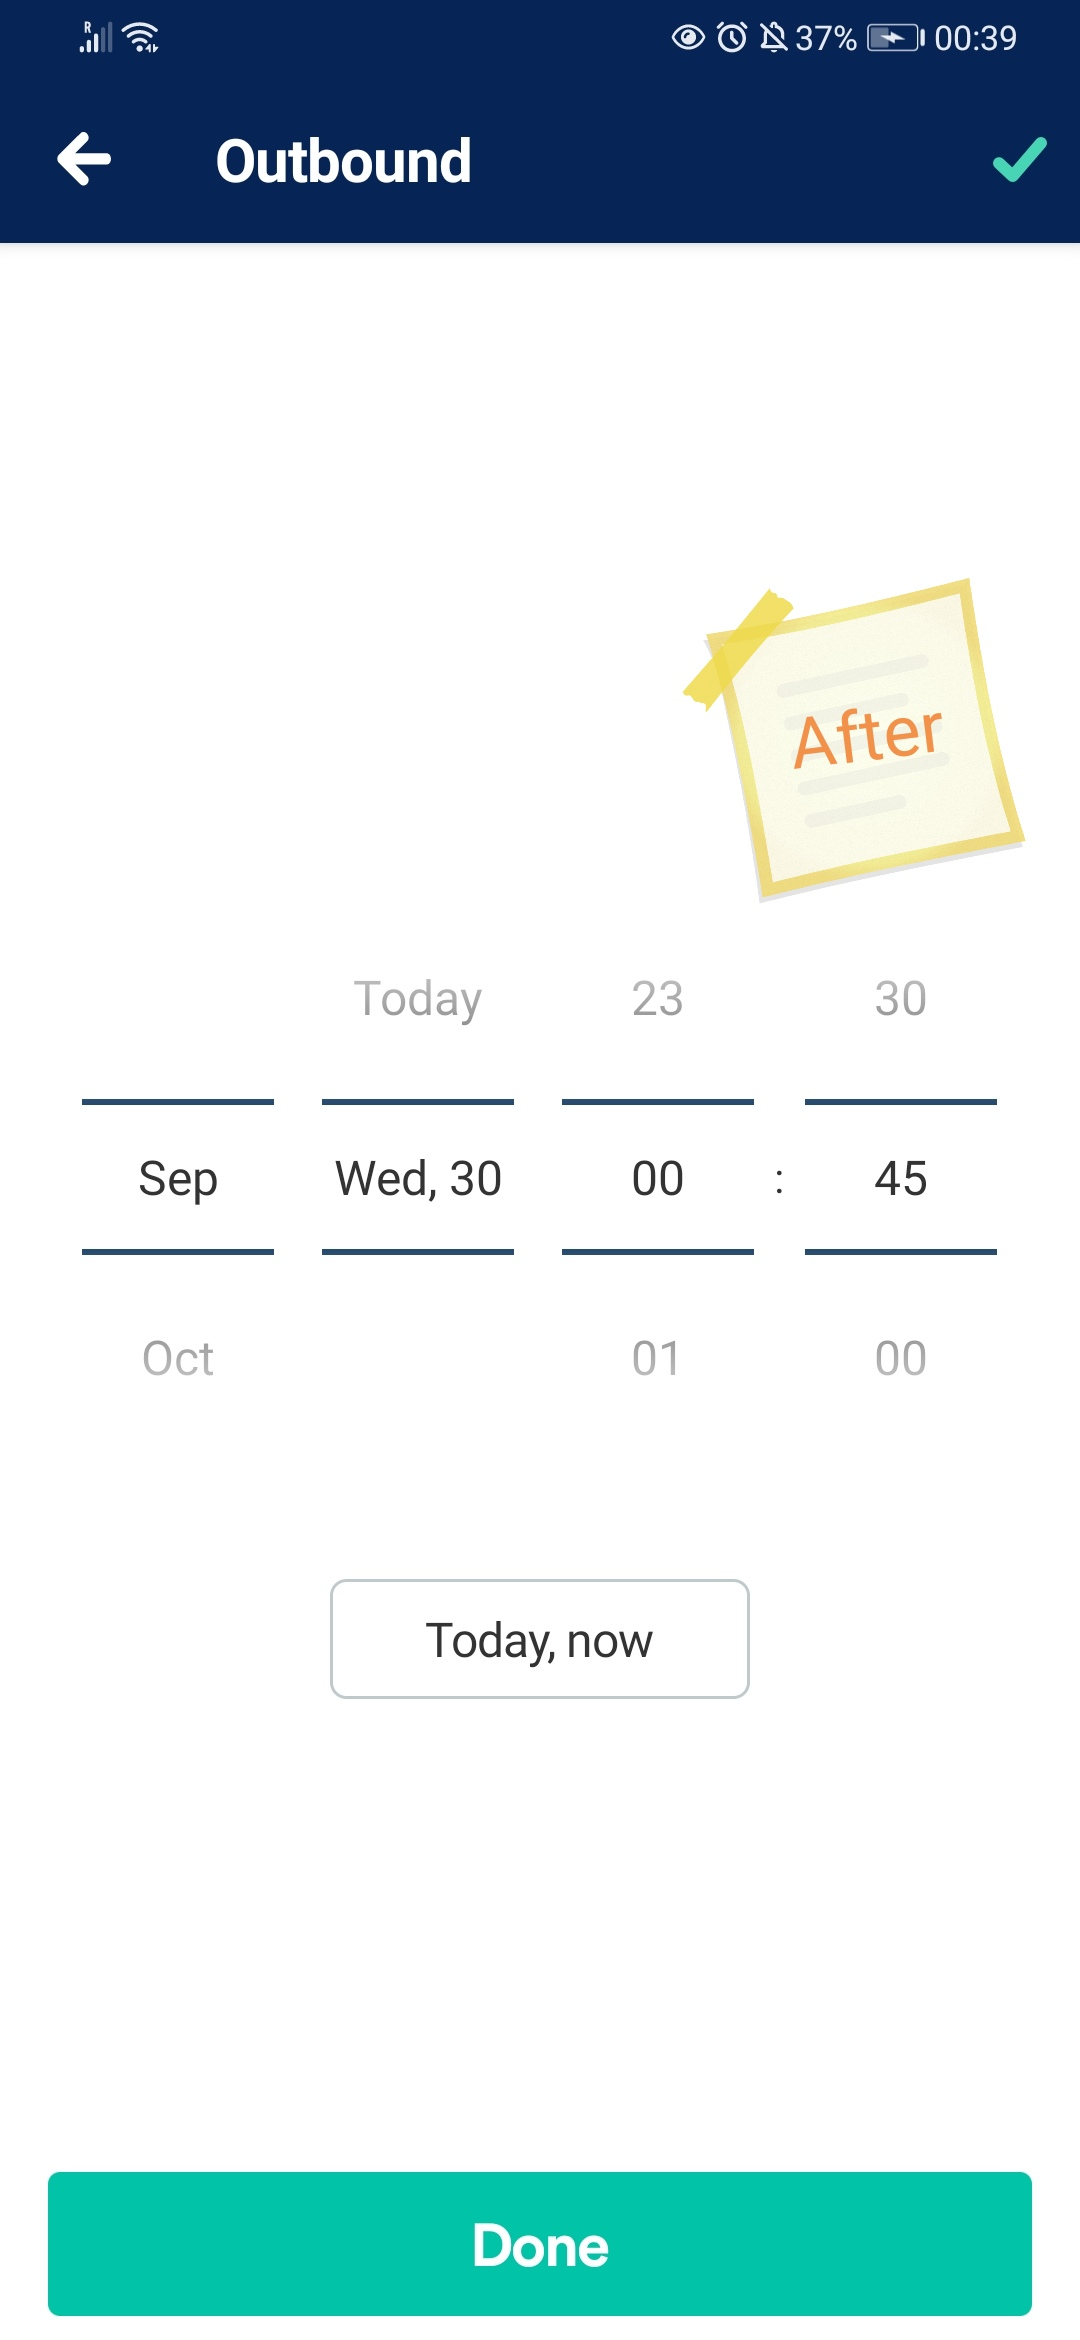 The new Trainline app date picker displaying 4 rotor picker to pick the month, day, hour, and minute